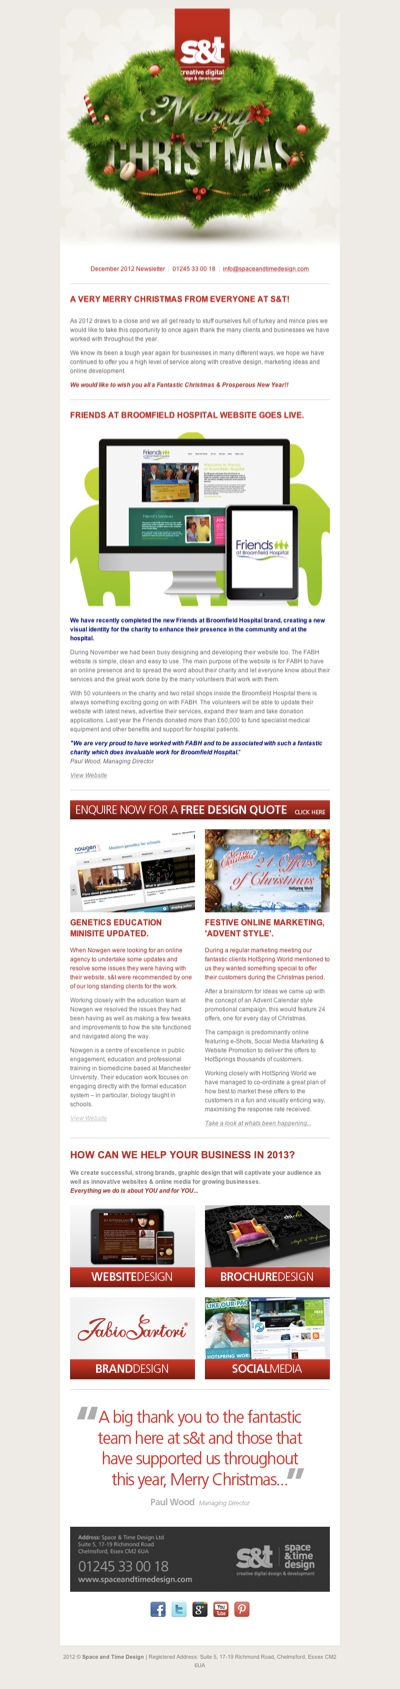 Best Holidays Newsletters Images On   Holiday Emails